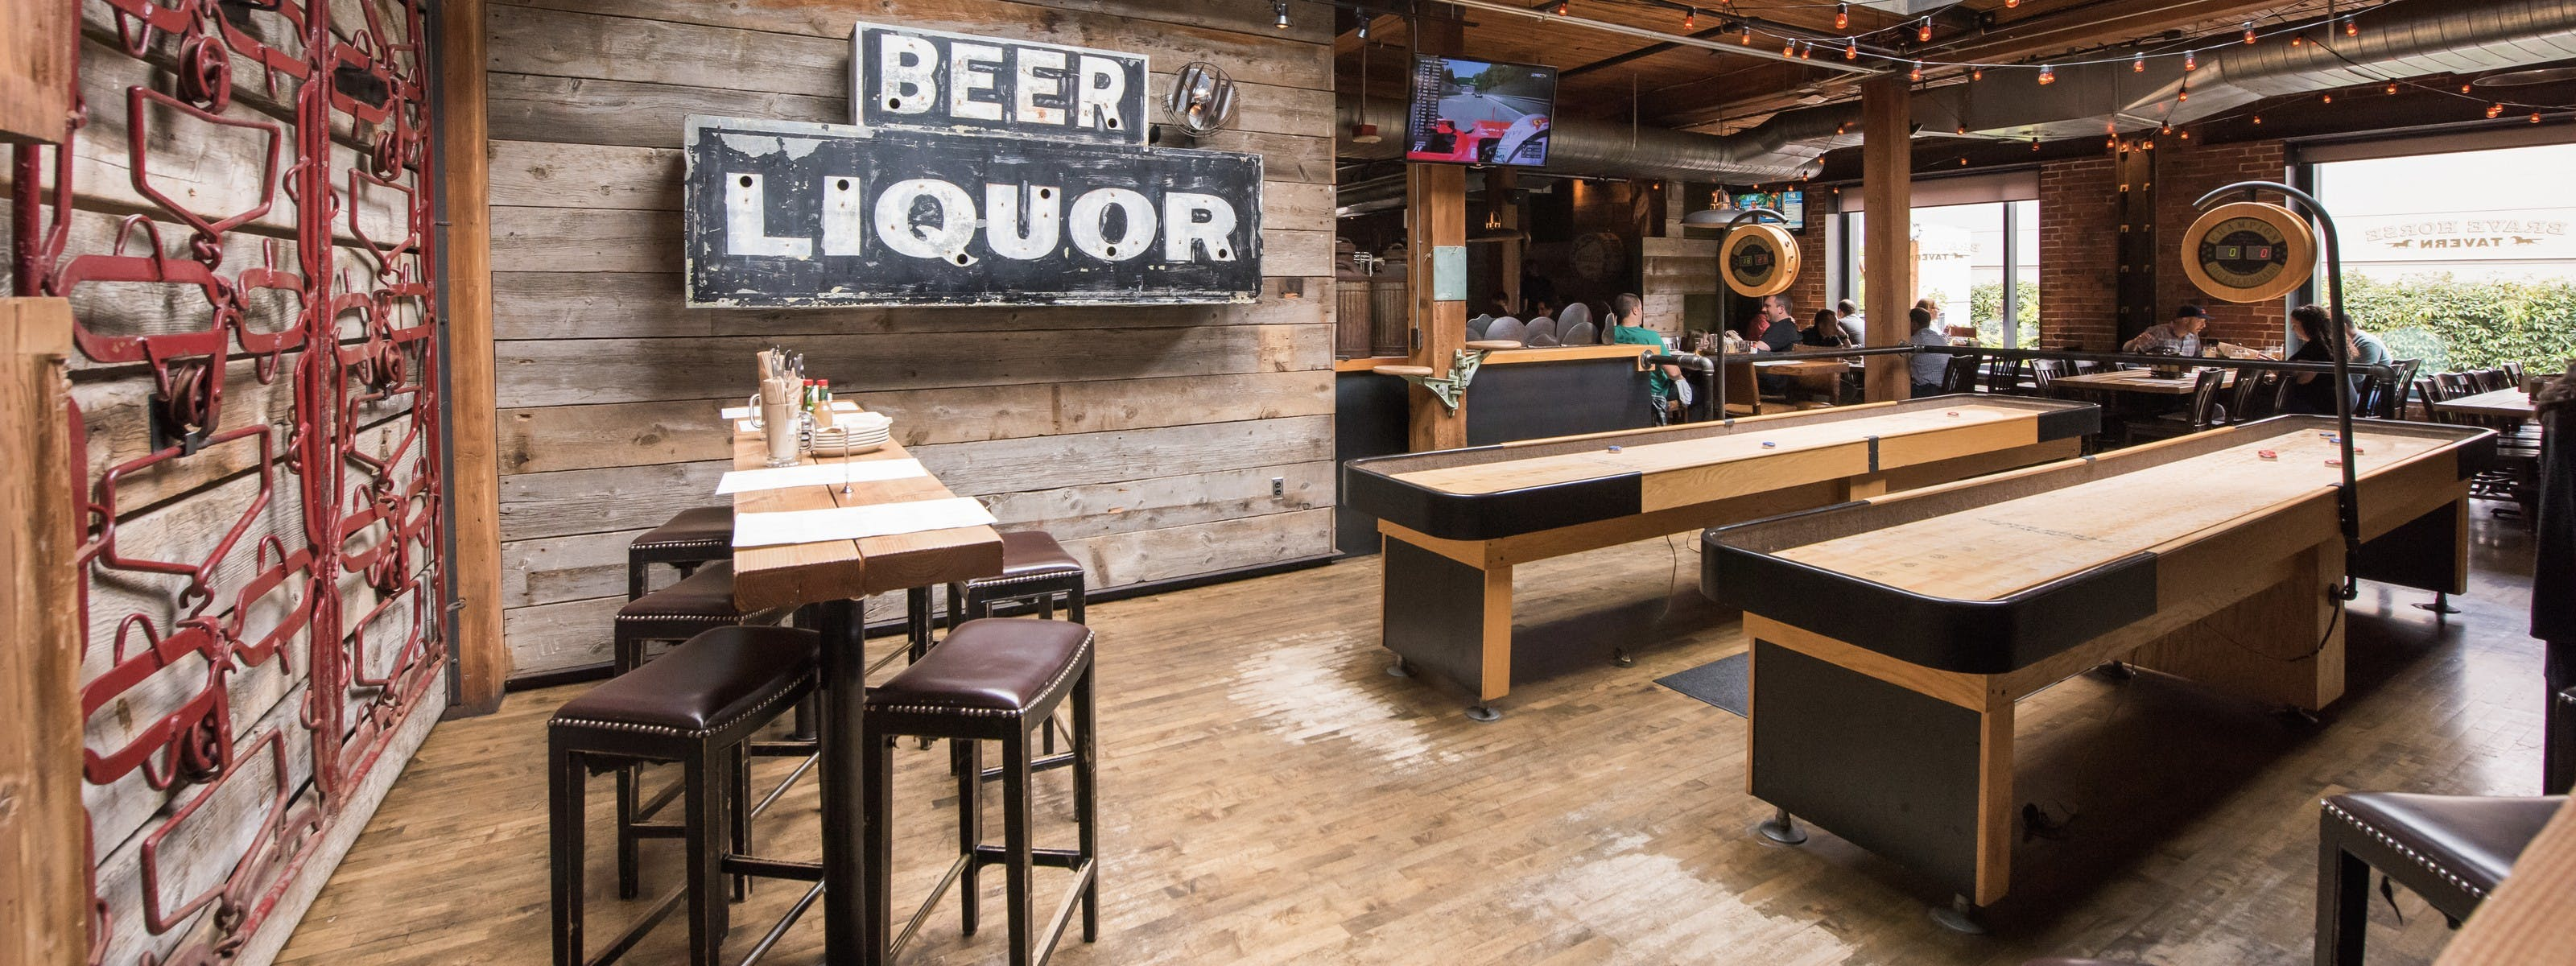 23 Great Bars With Activities Seattle The Infatuation